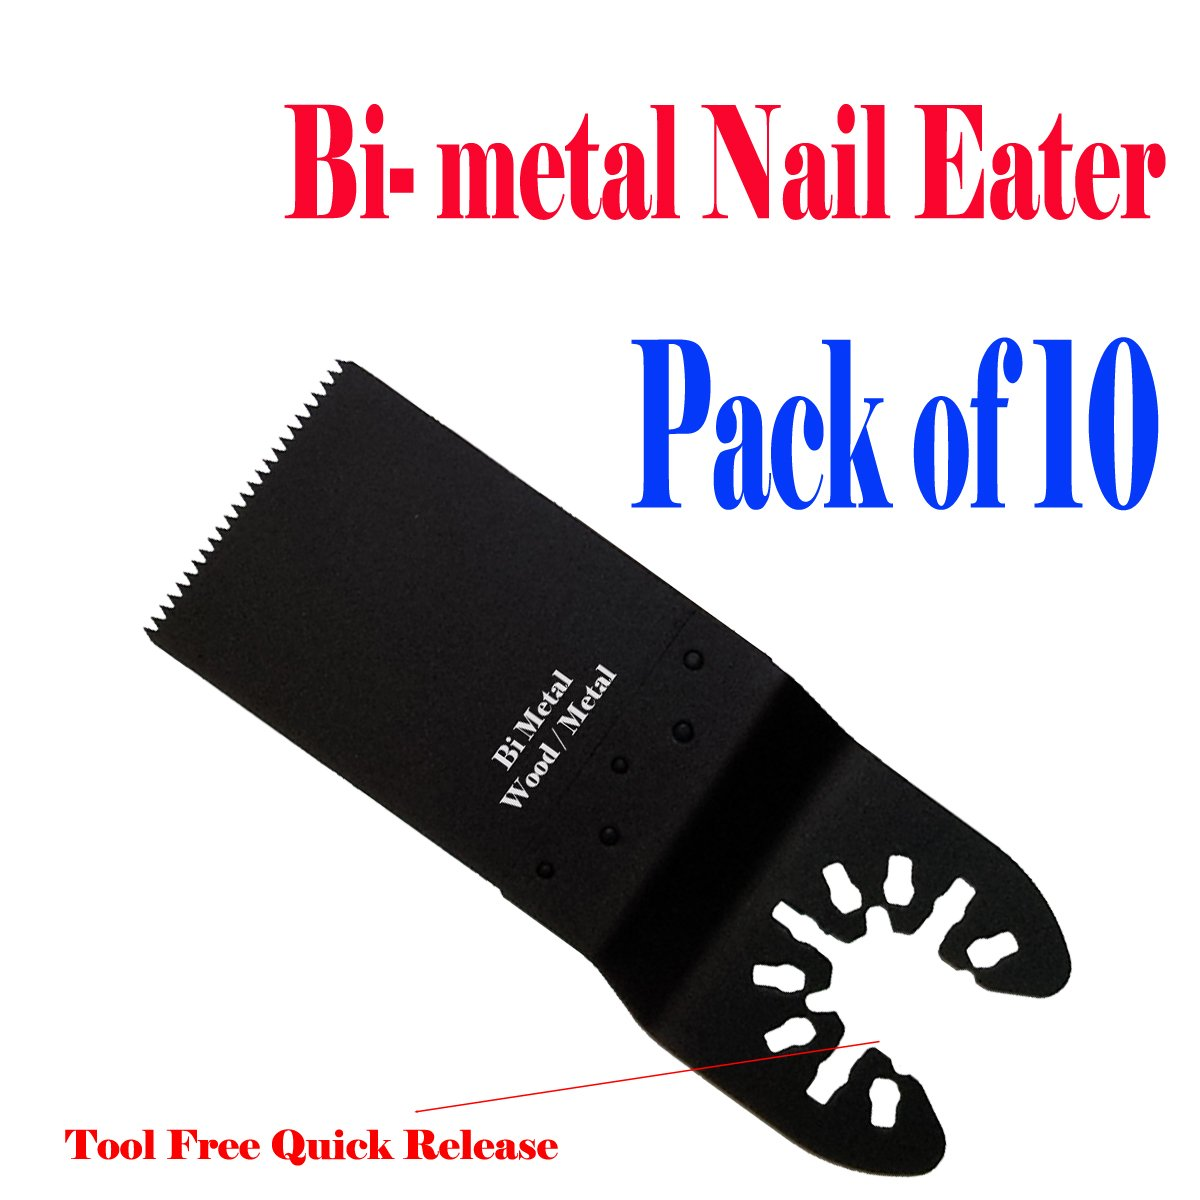 MTP TM Pack of 10 Bi-metal Nail Eater Quick Release Universal Fit Multi Tool Oscillating Multitool Saw Blade for Craftsman 20v Bolt-on Mm20 Rockwell Hyperlock Shopseies 12v Universal Fit Porter Cable Black and Decker Bosch GOP Quick Release System by MTP-Quick Release